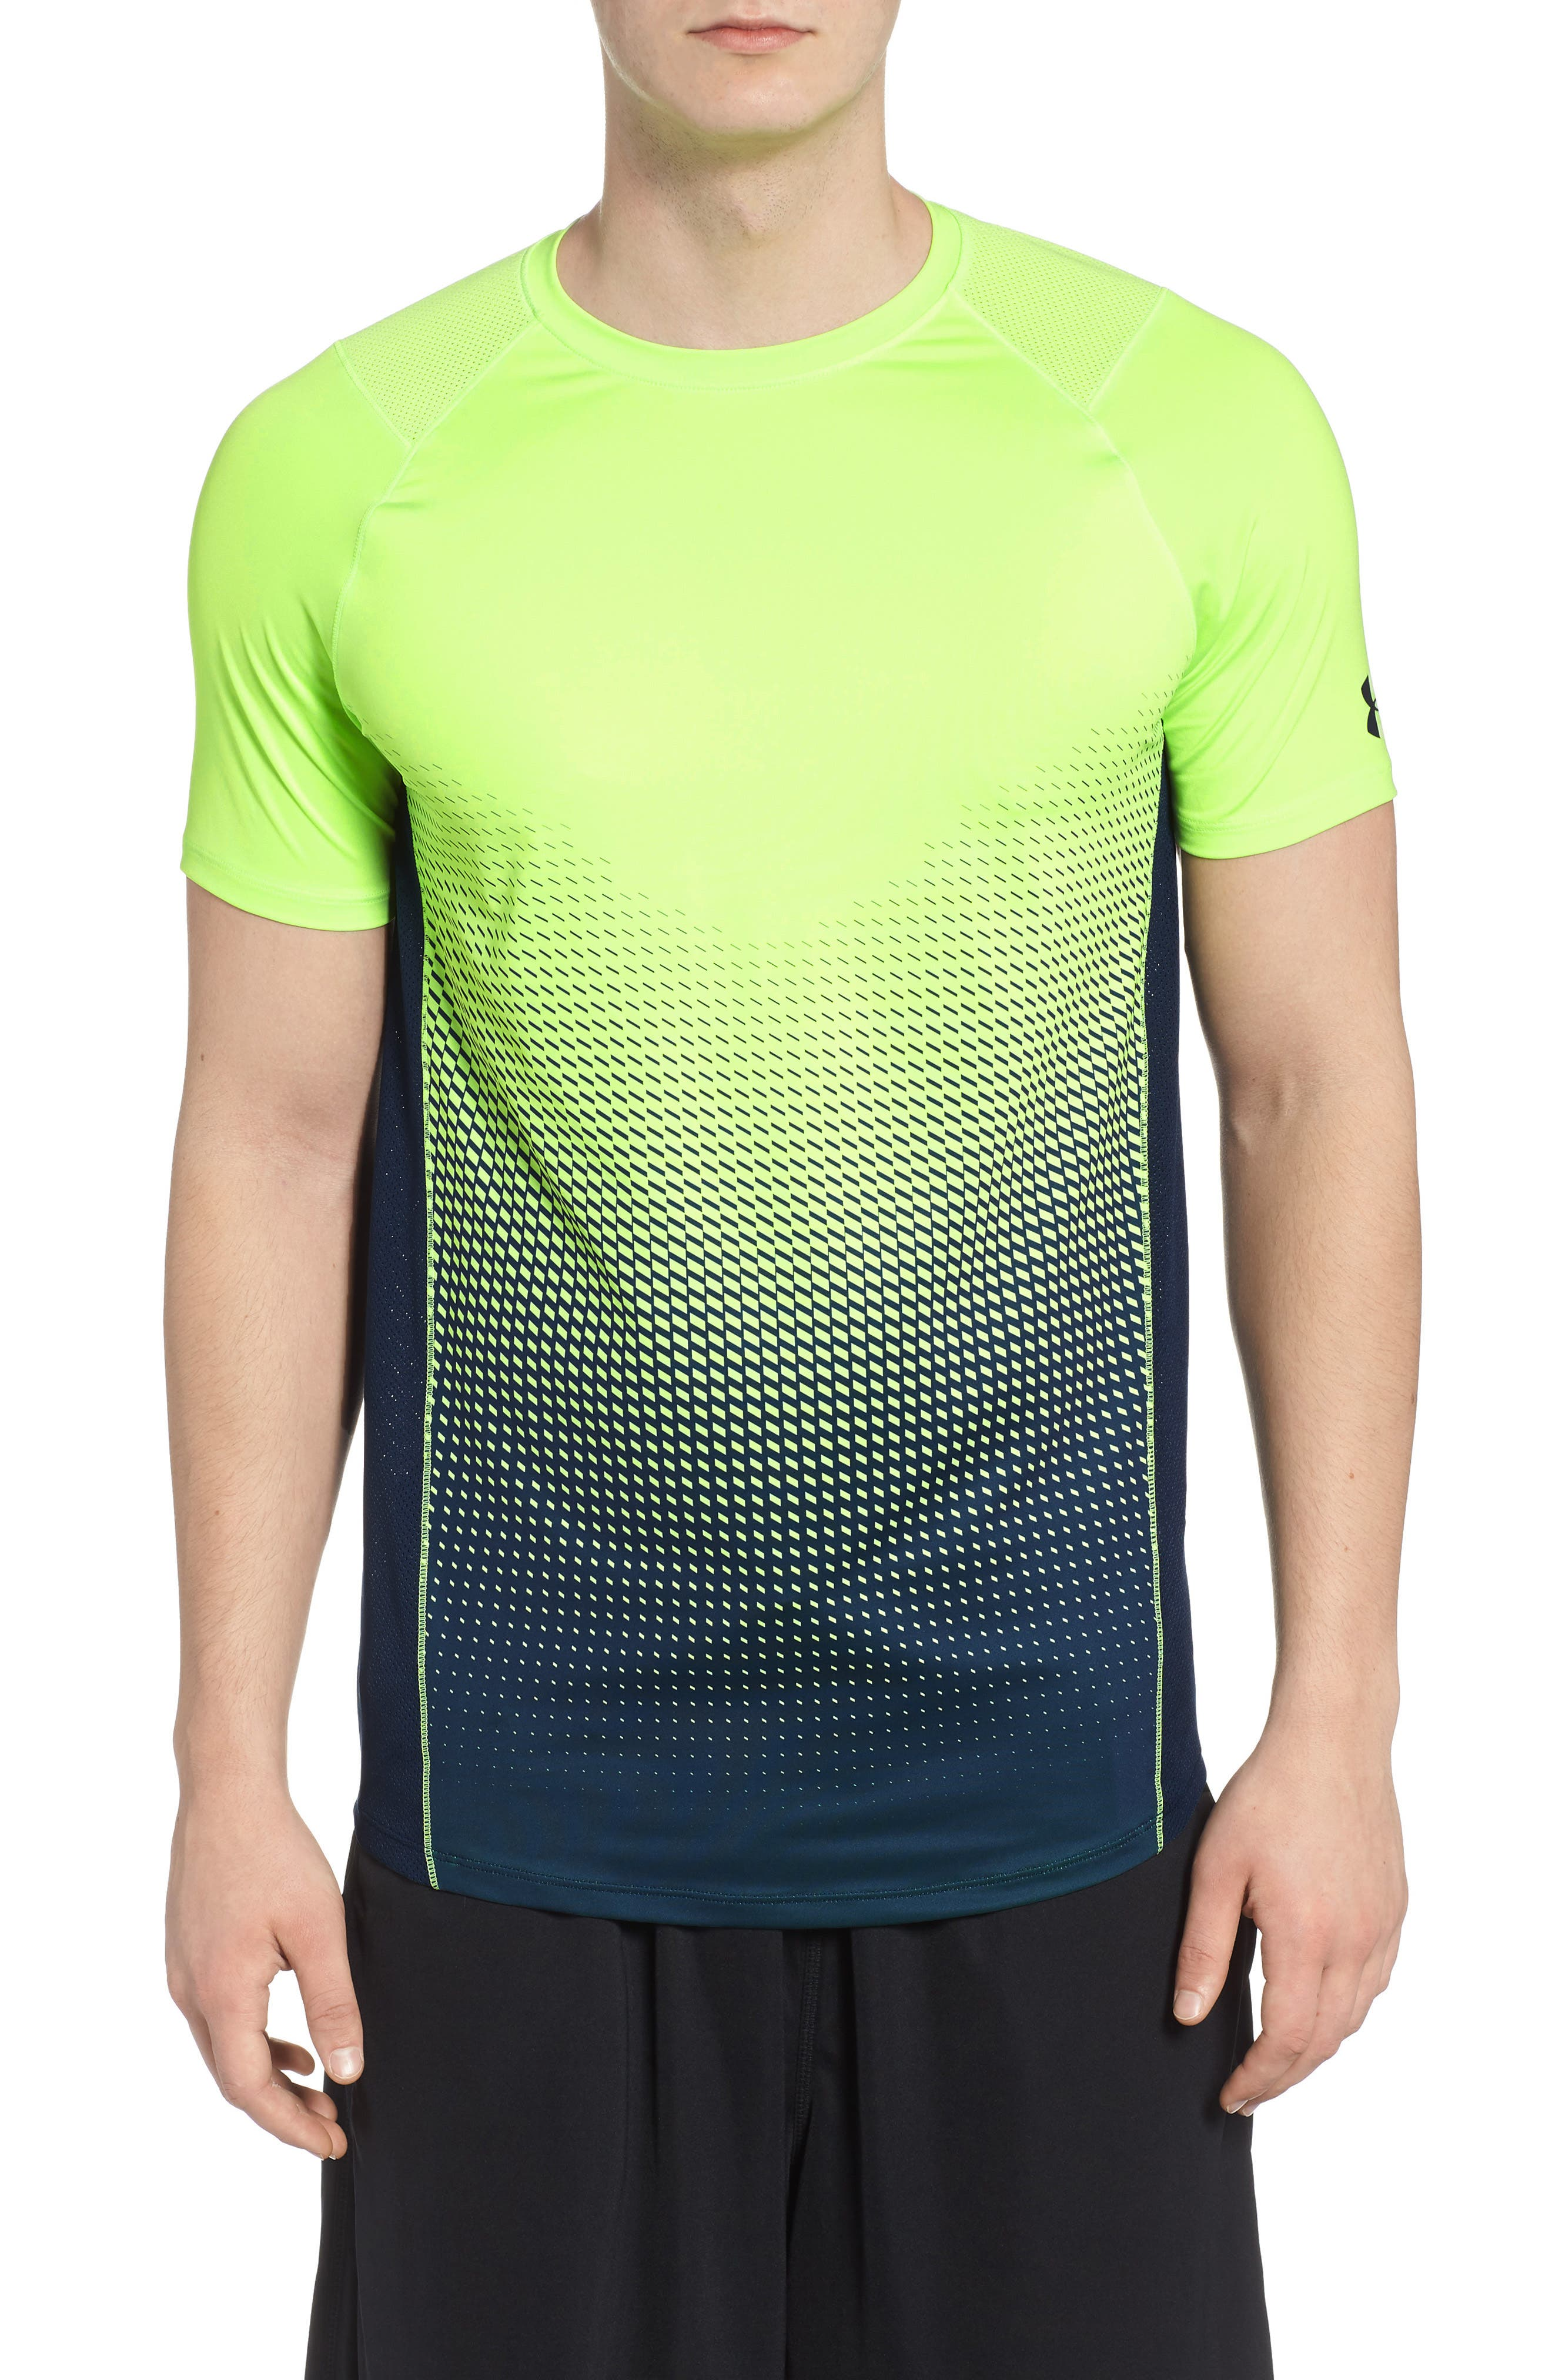 Under Armour MK1 Dash Crewneck T-Shirt